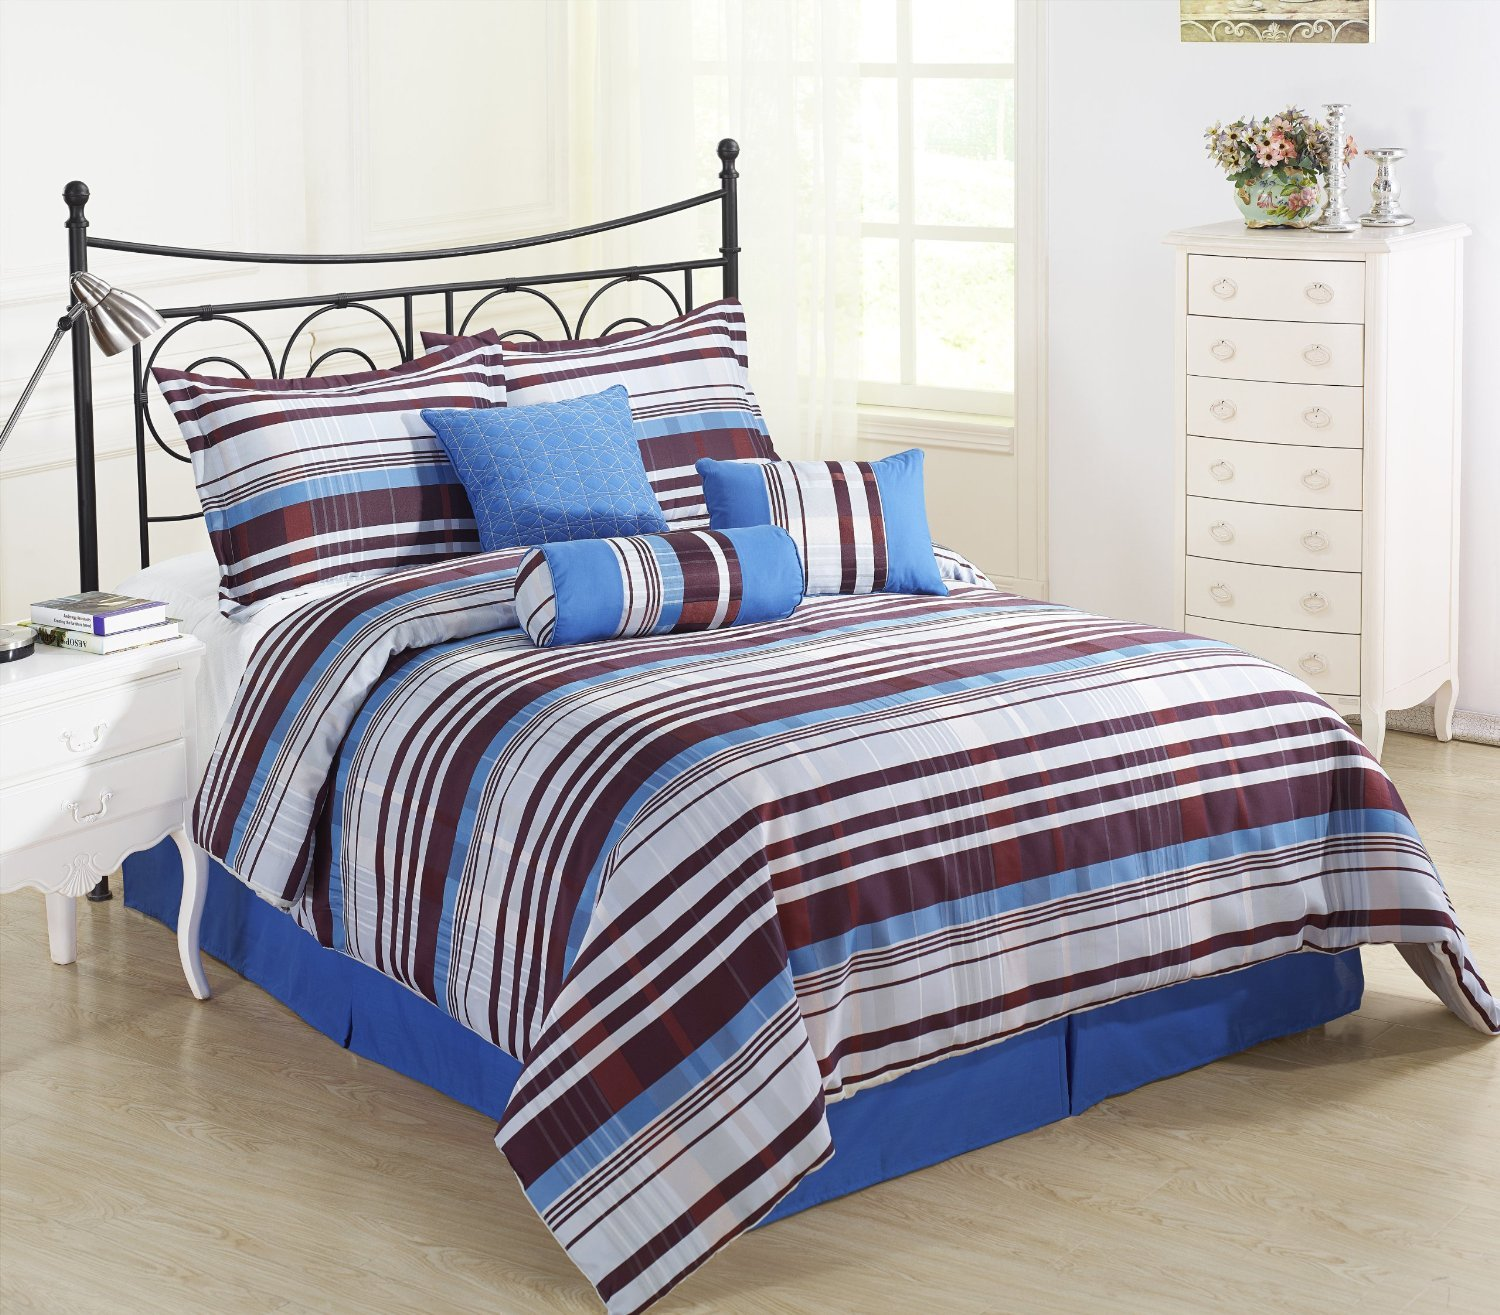 Retro 7 Piece Striped Comforter Set Ebay